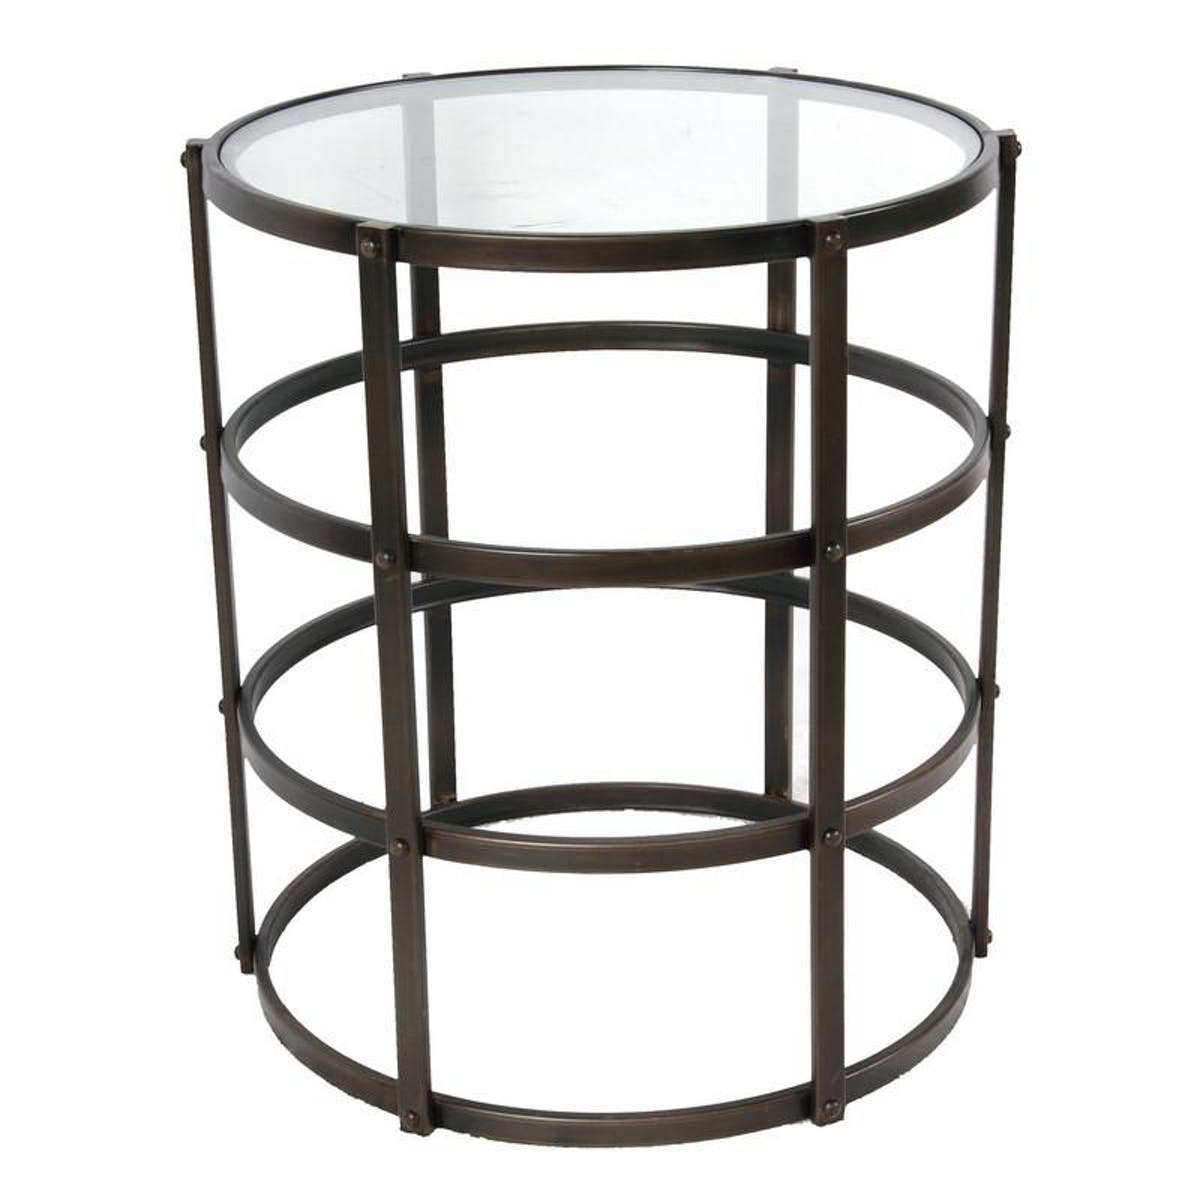 home metal glass accent table modish tap expand base dark wood occasional tables mirage mirrored sisal runner antique looking end target leather chair whole lamp shades small tall